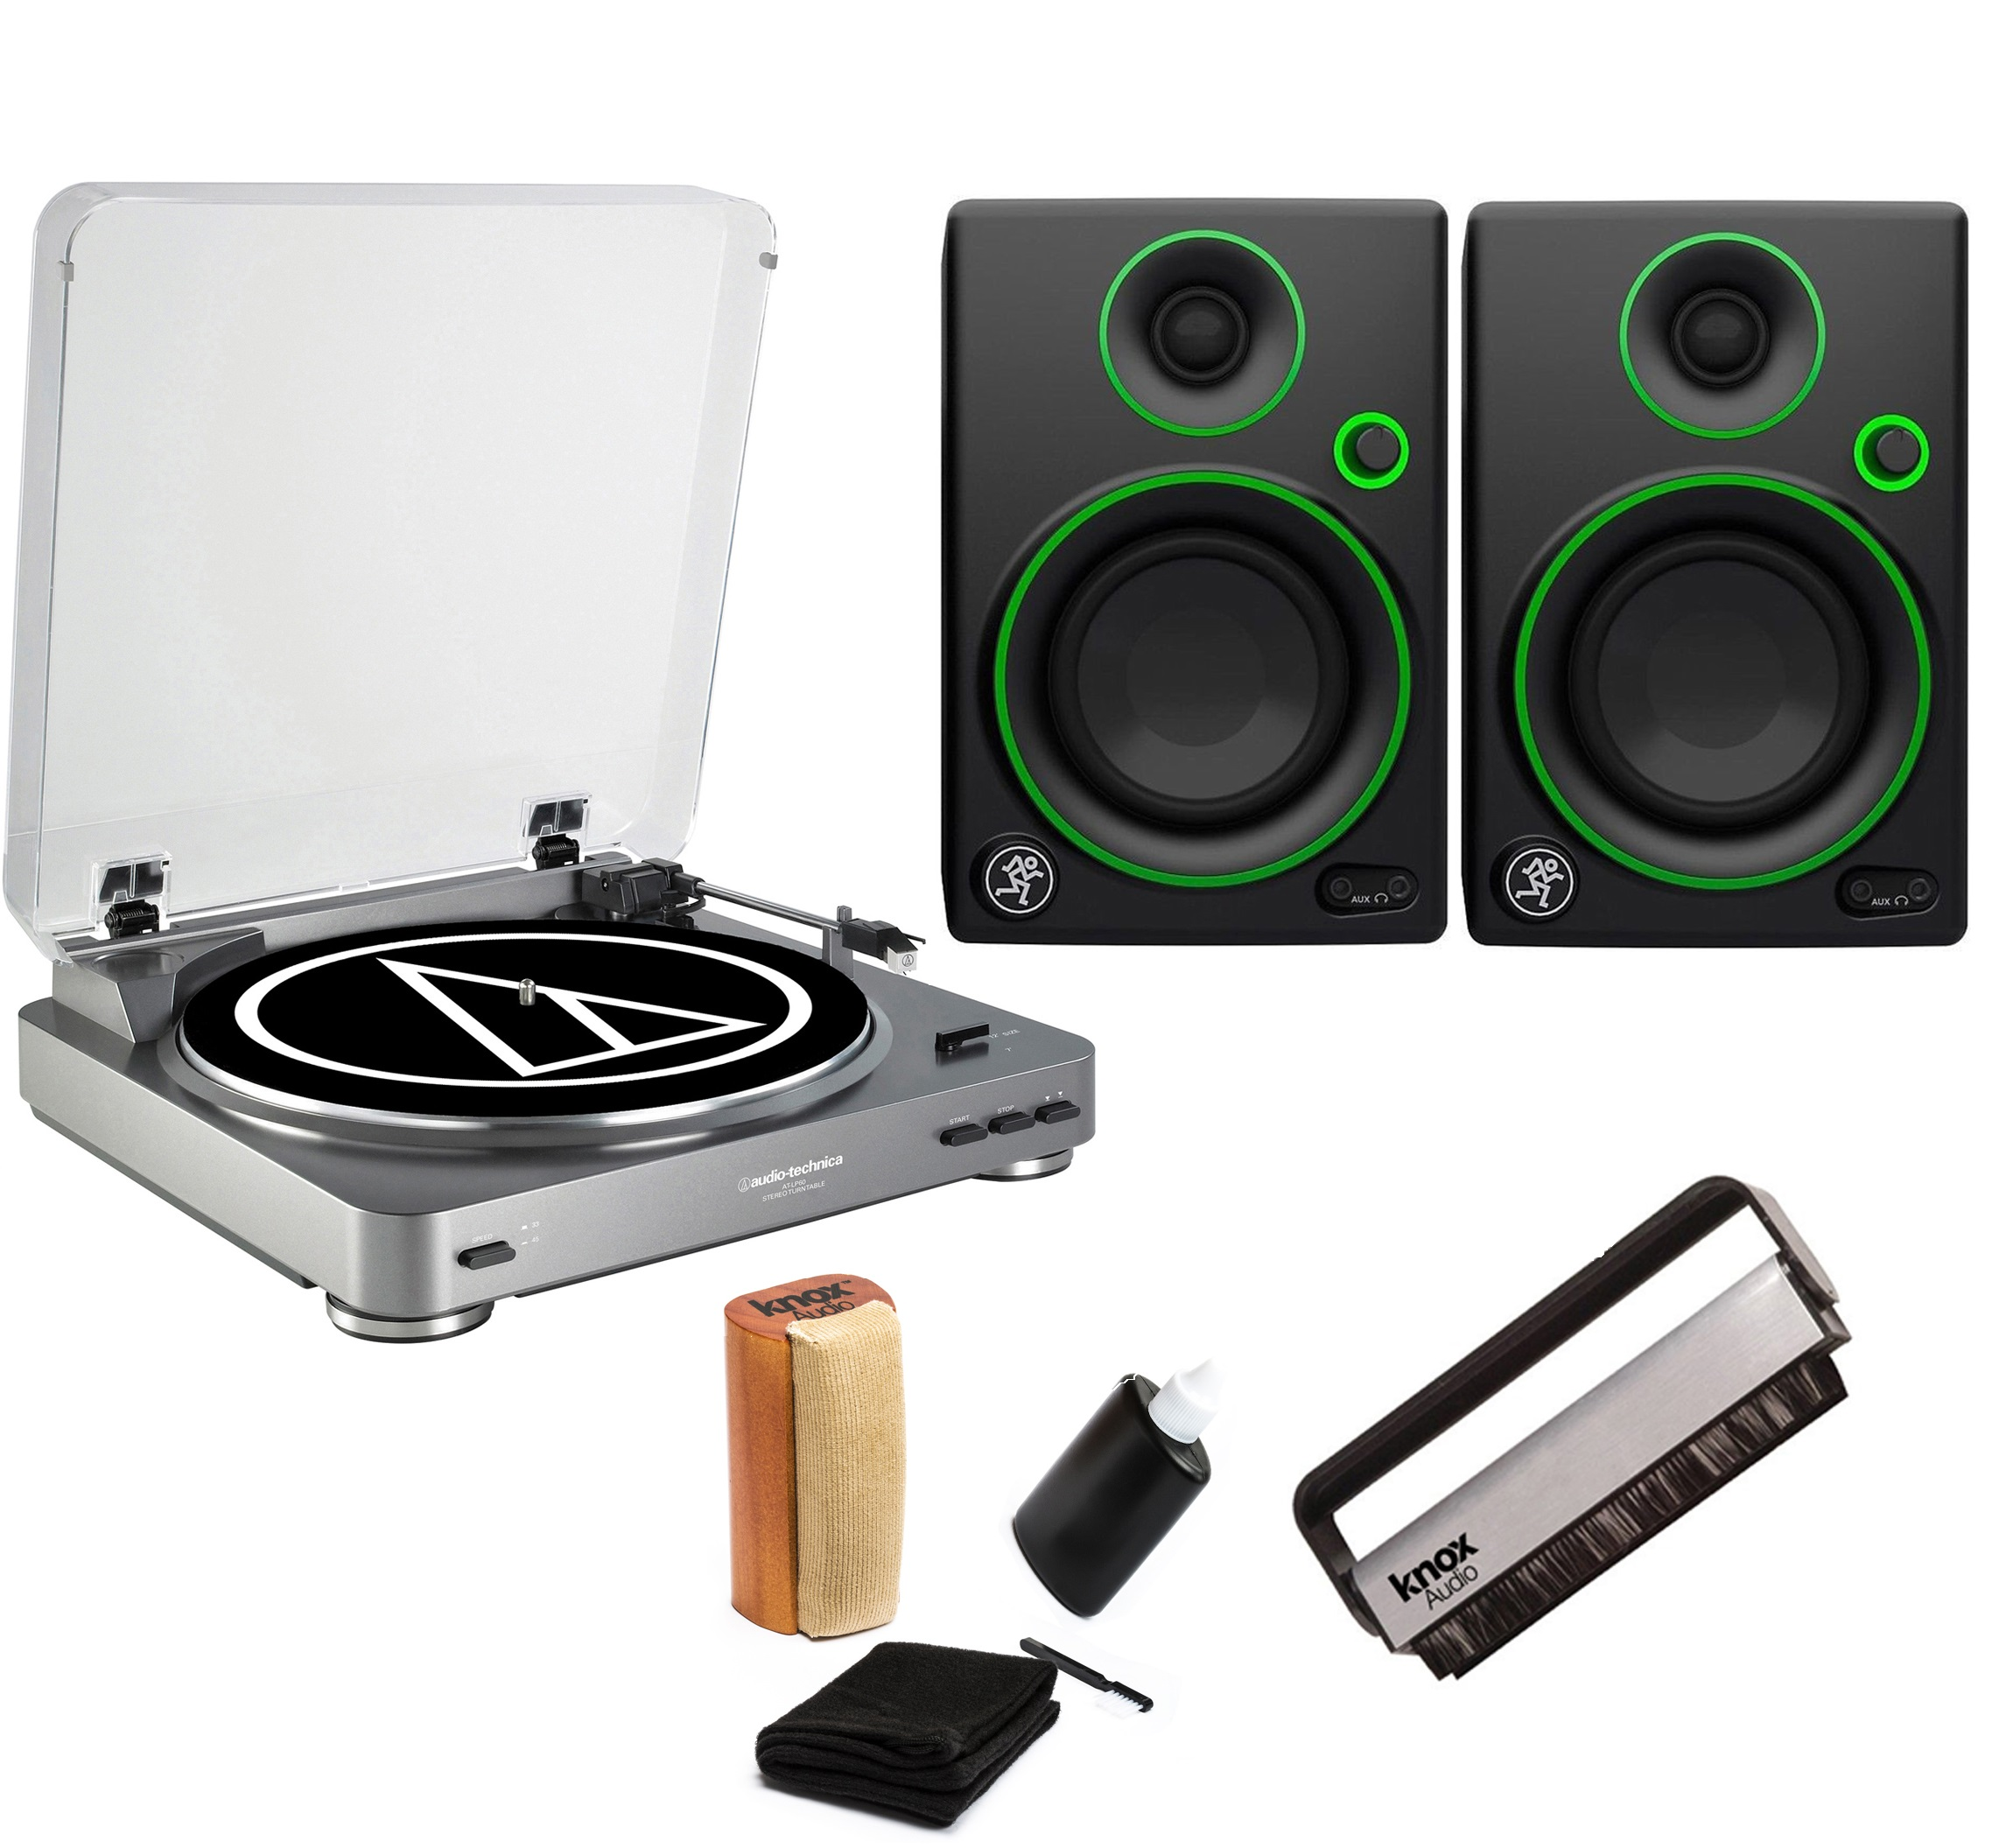 Audio-Technica AT-LP60 Turntable with 2 Mackie CR3 Monitors & Knox Cleaning Kit